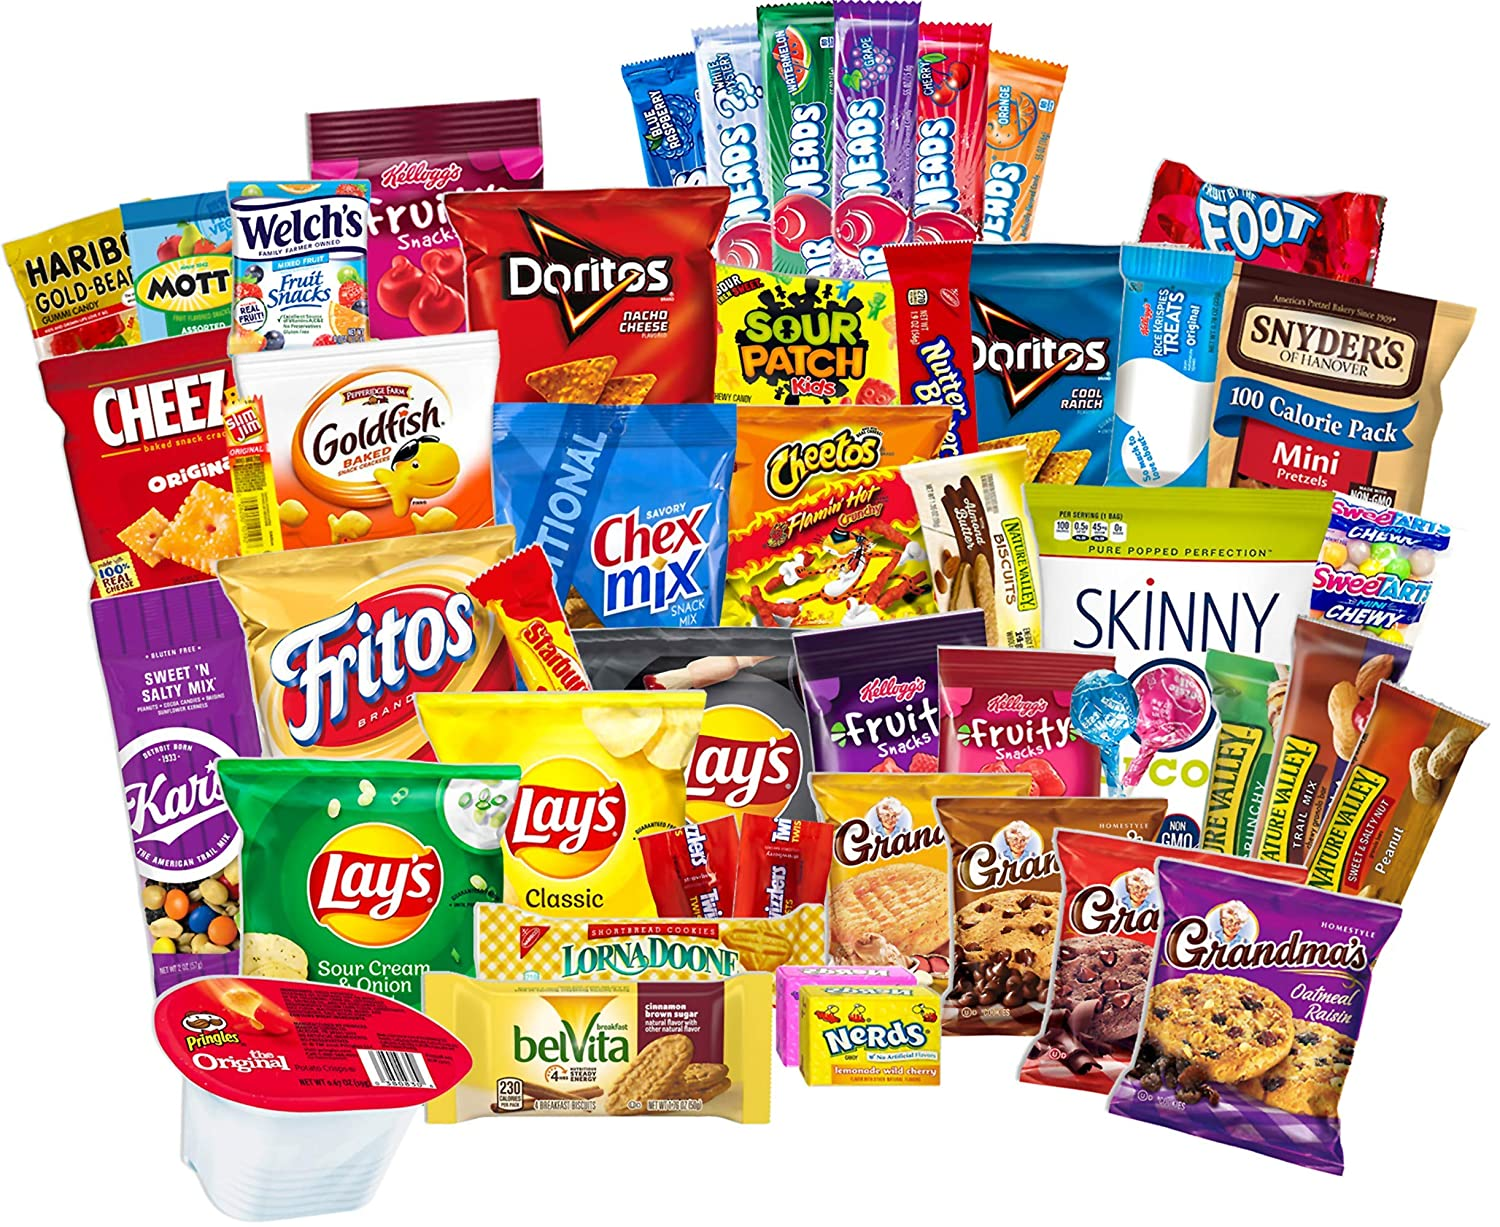 Ultimate Classic Snacks Care Package Variety Assortments of Chips Cookies Crackers Nuts Food Granola Bar Candy Gift Box Basket Bundle Mix Bulk Samplers Treats College Students Office School Set of 60